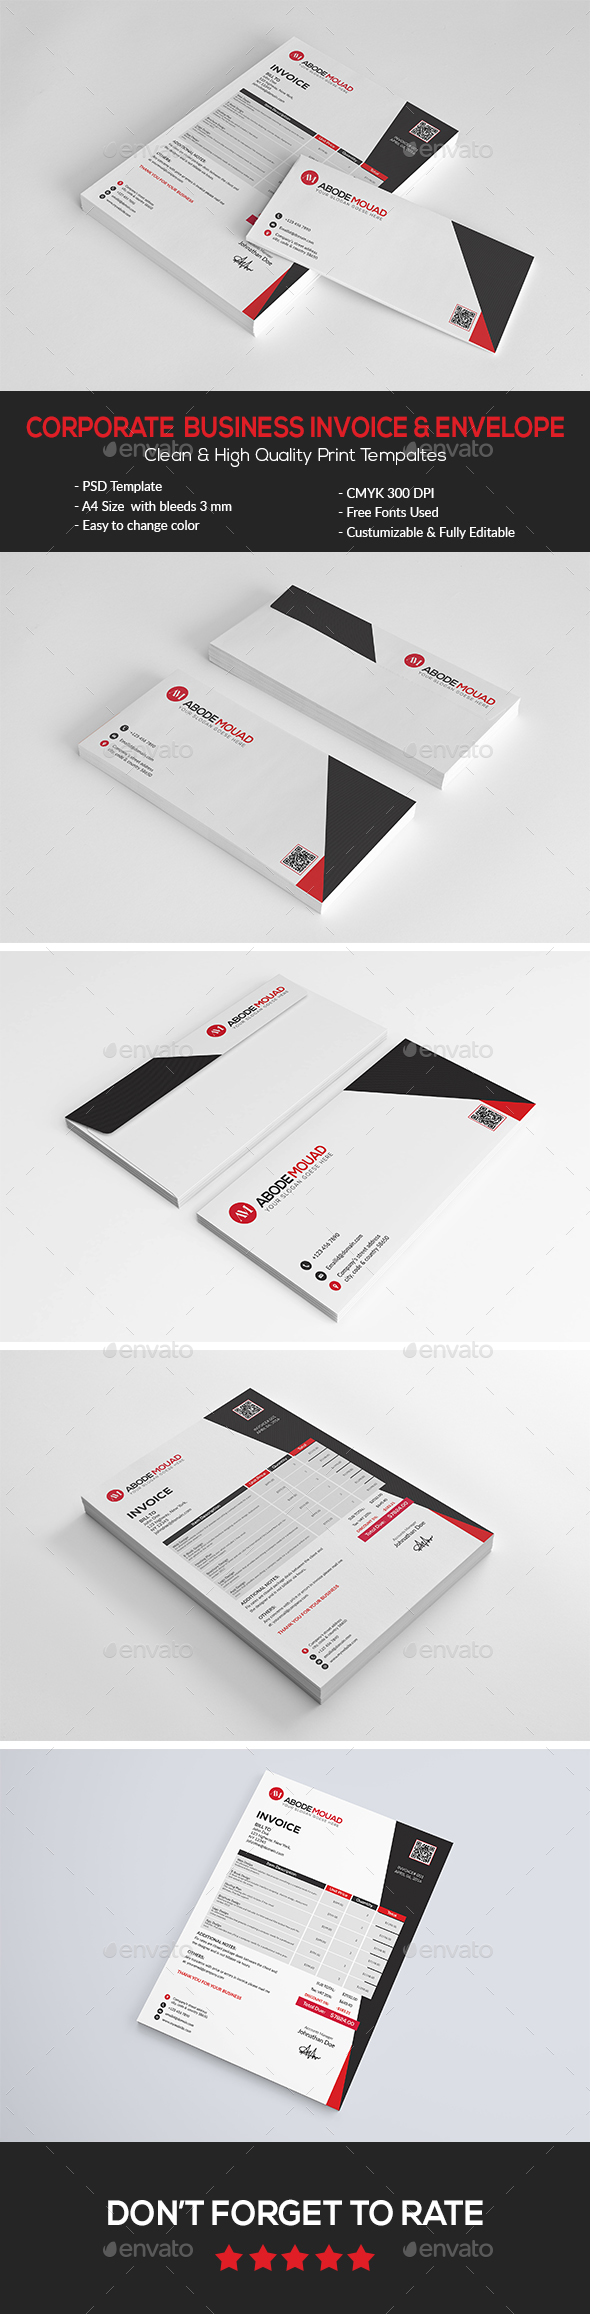 Corporate  Business Invoice & Envelope - Proposals & Invoices Stationery